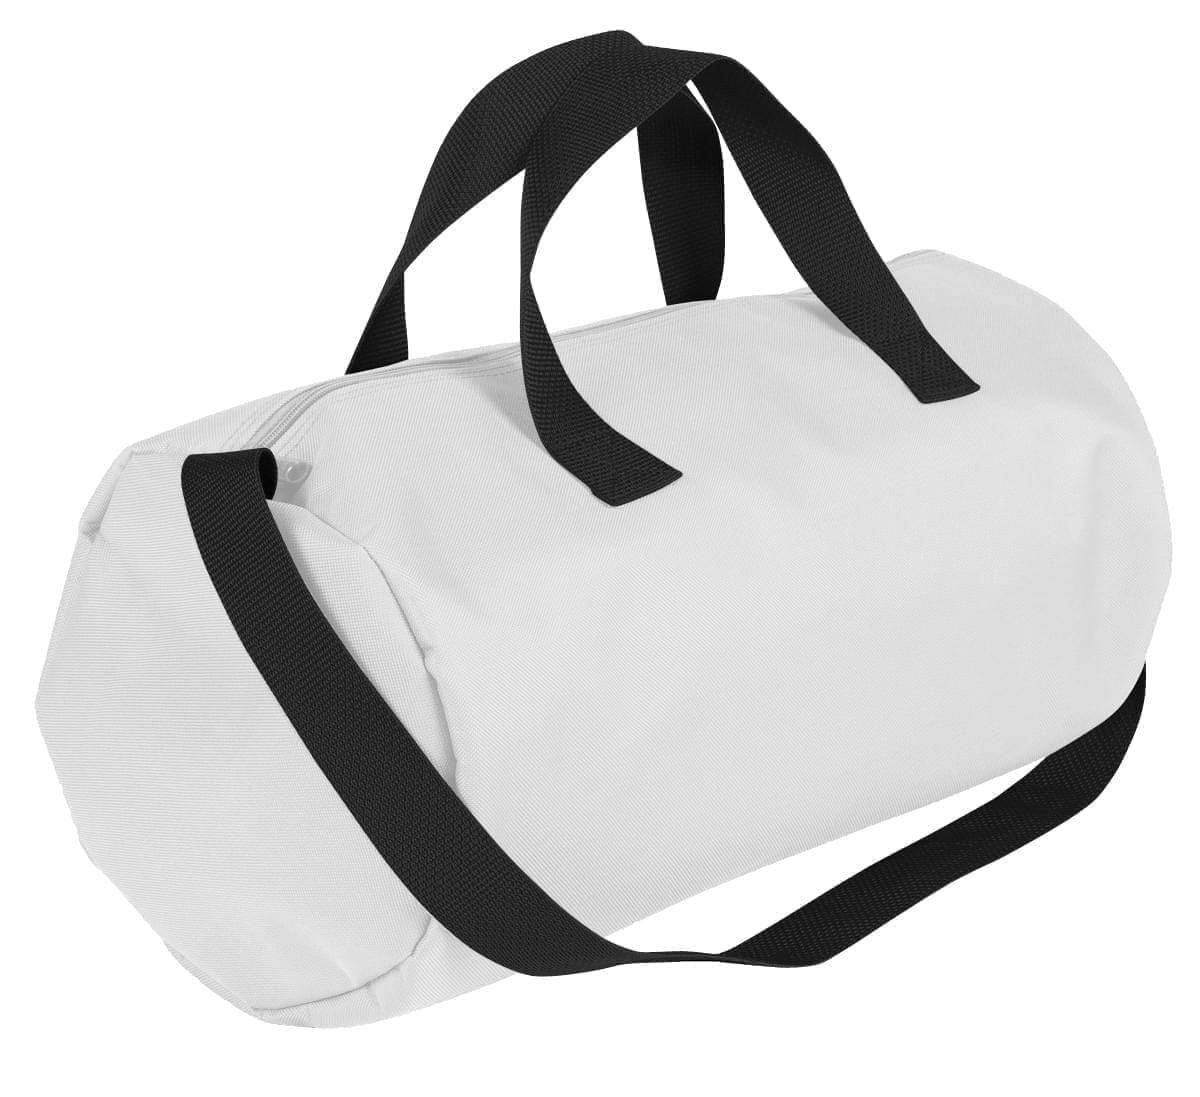 USA Made Nylon Poly Gym Roll Bags, White-Black, ROCX31AA3R